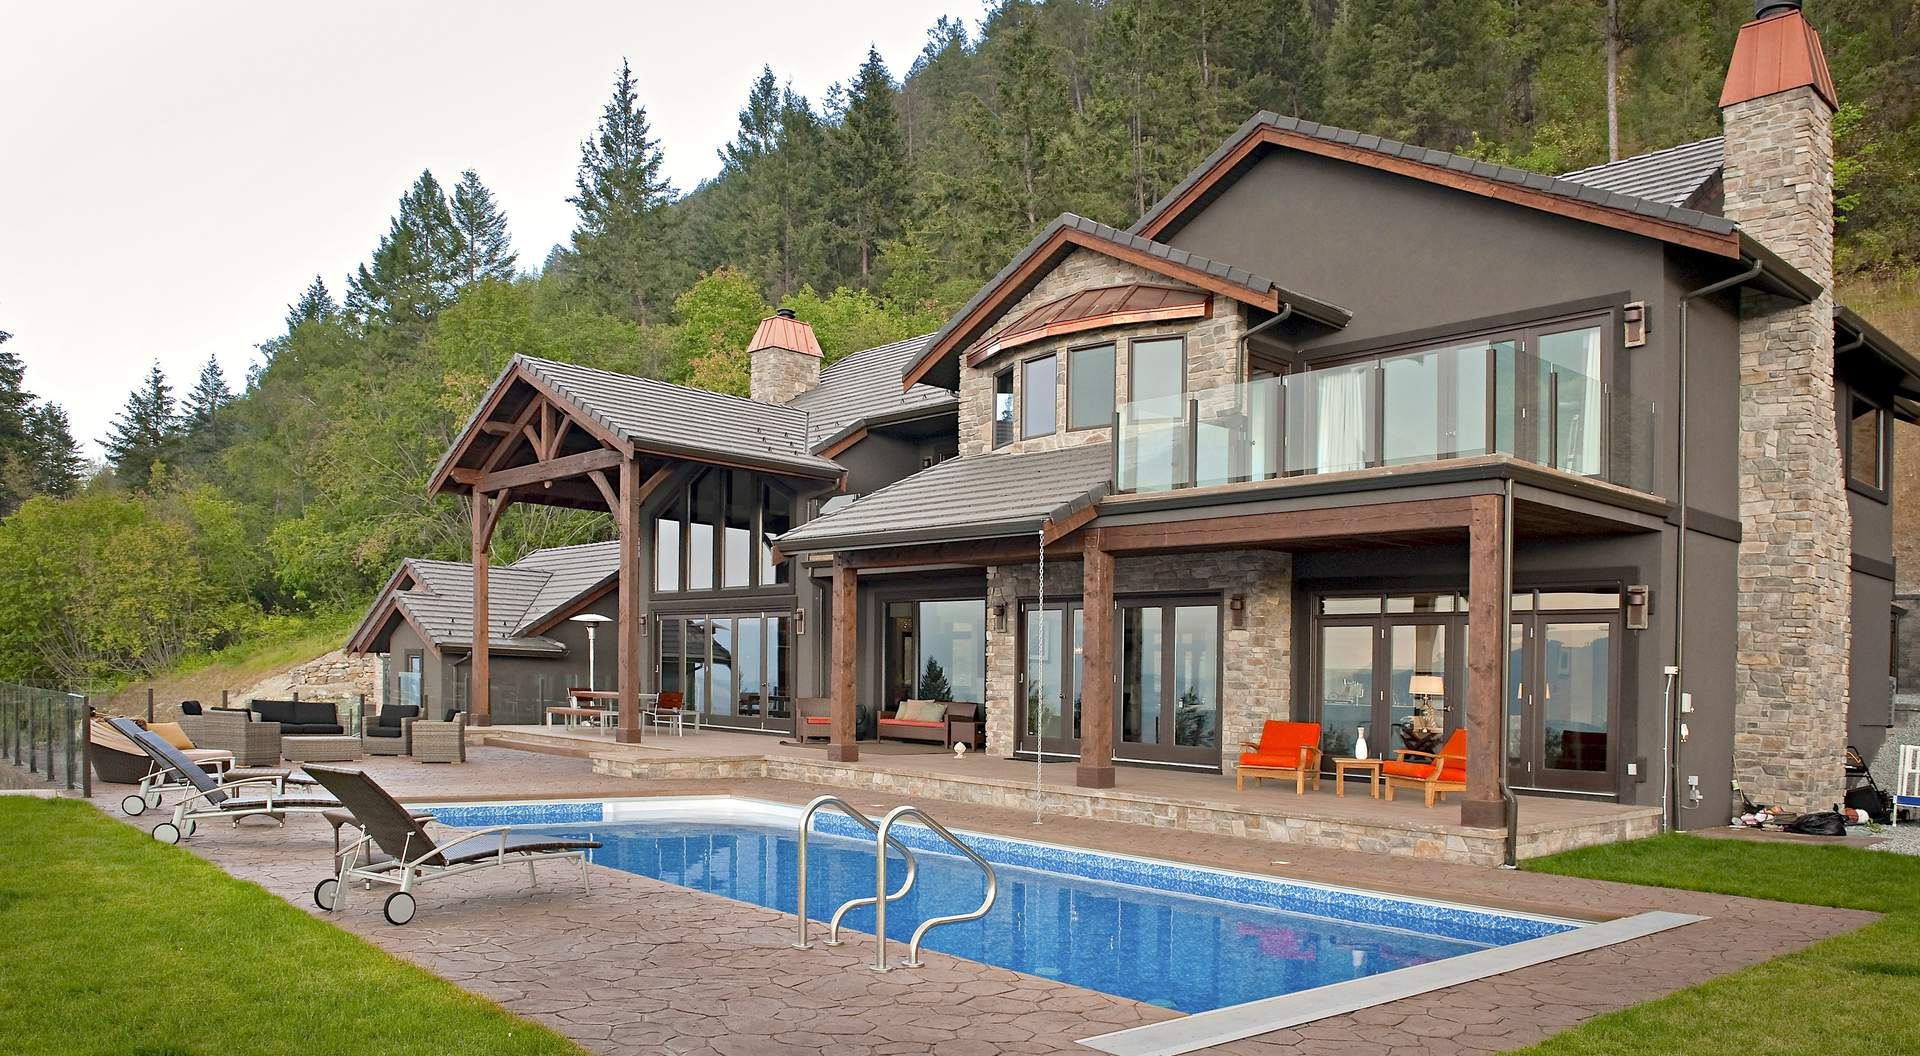 British Colombia Canada Ocean Waterfront Property For Sale